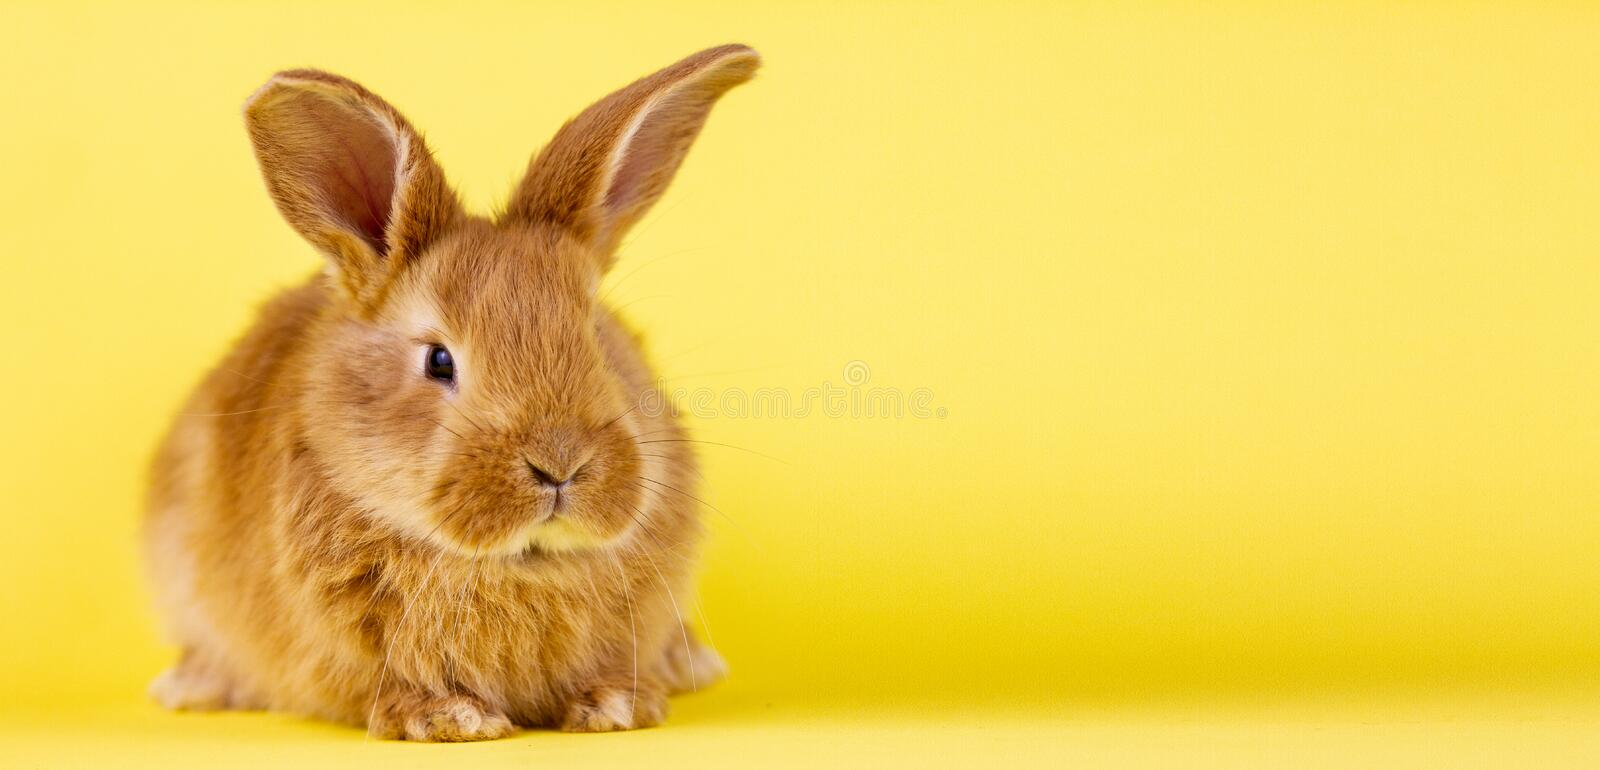 Little easter lively rabbit on a yellow background. Red fluffy rabbit on a yellow background, banner picture. Easter Bunny stock images